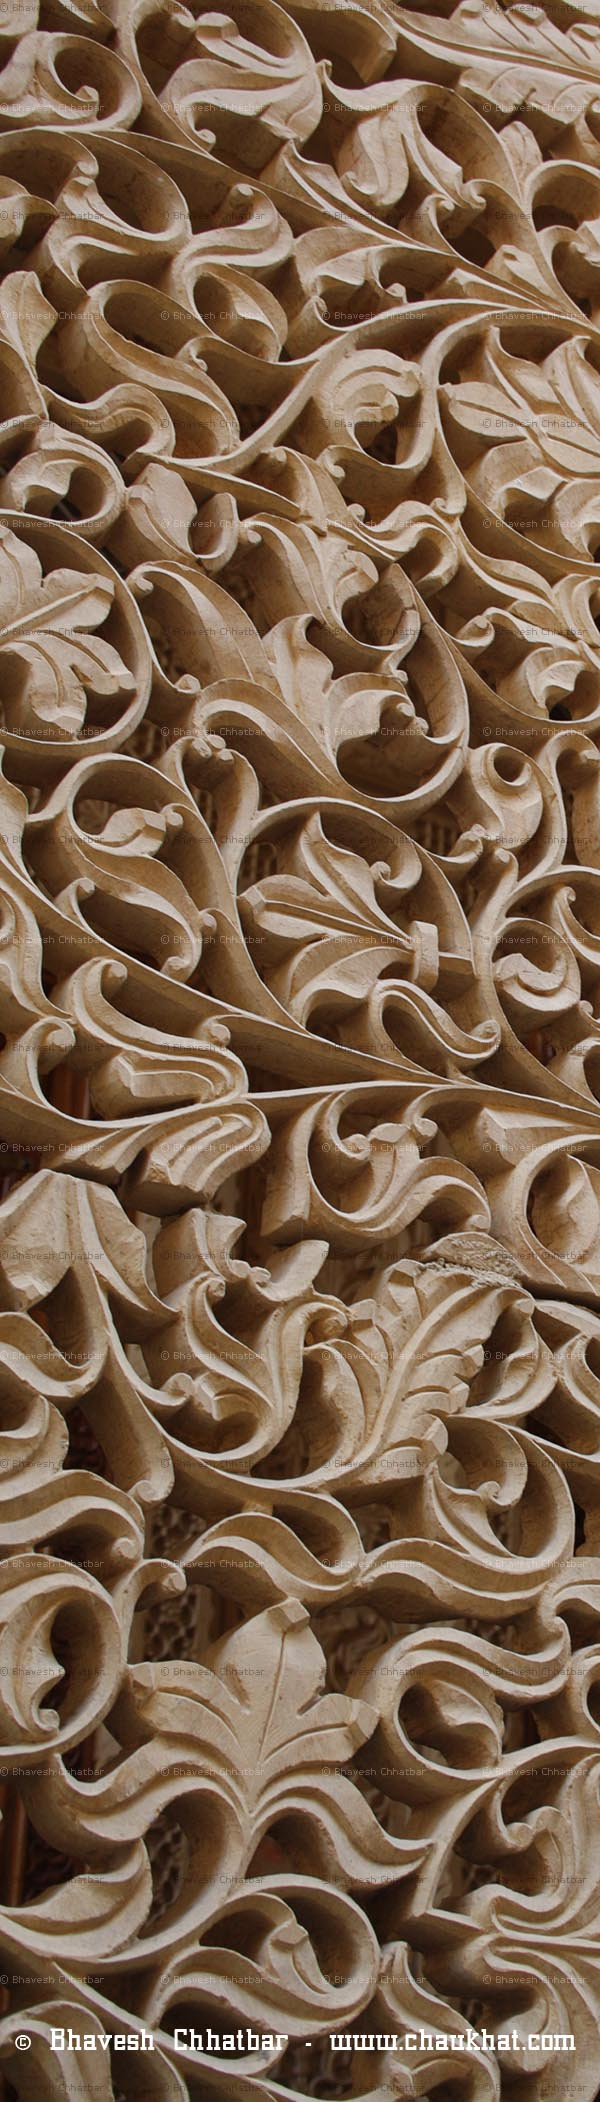 Carvings on a wall of a palace in Jaisalmer